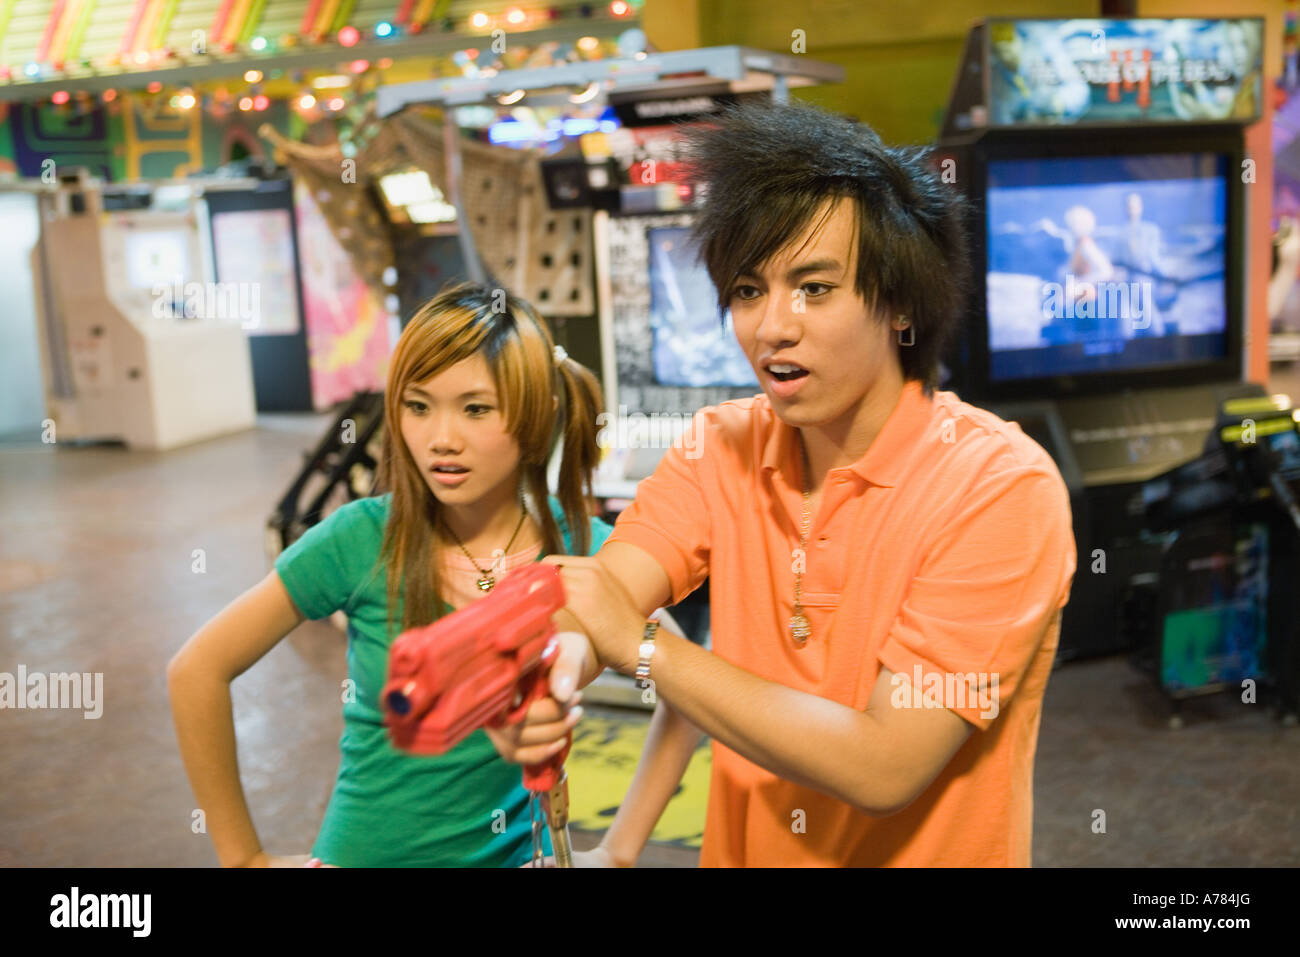 Teenage couple playing game in video arcade - Stock Image